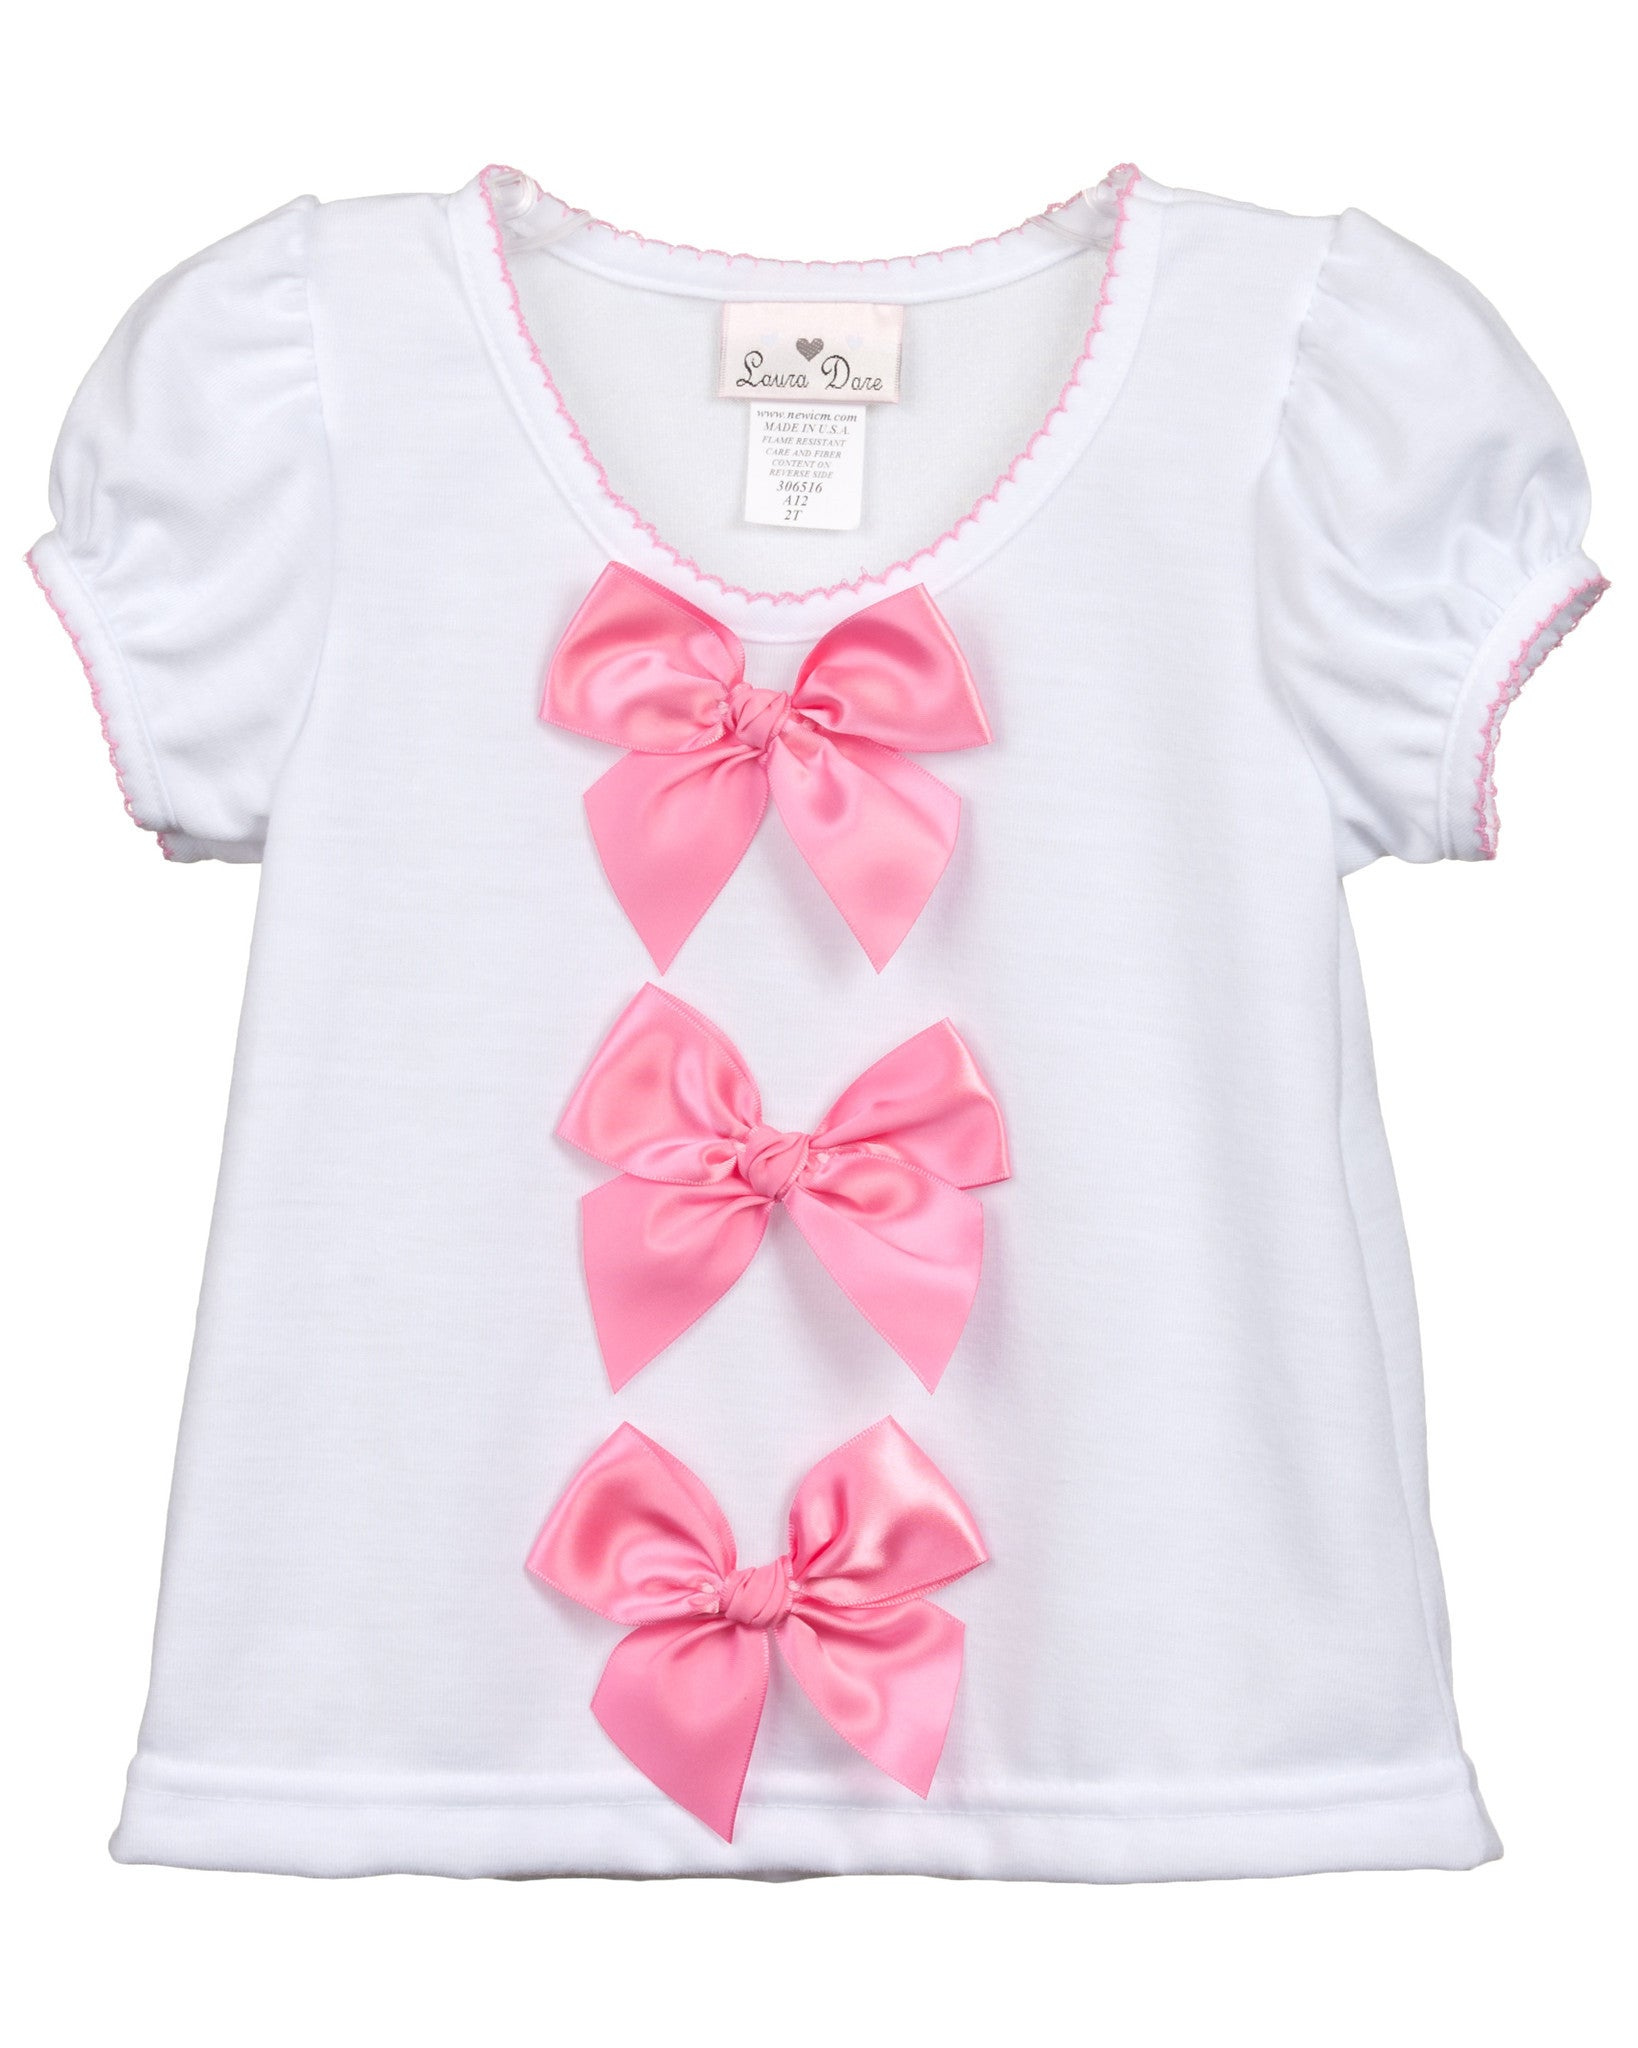 Laura Dare Baby Toddler Girls Bow Top Shirt (Many Colors Available)